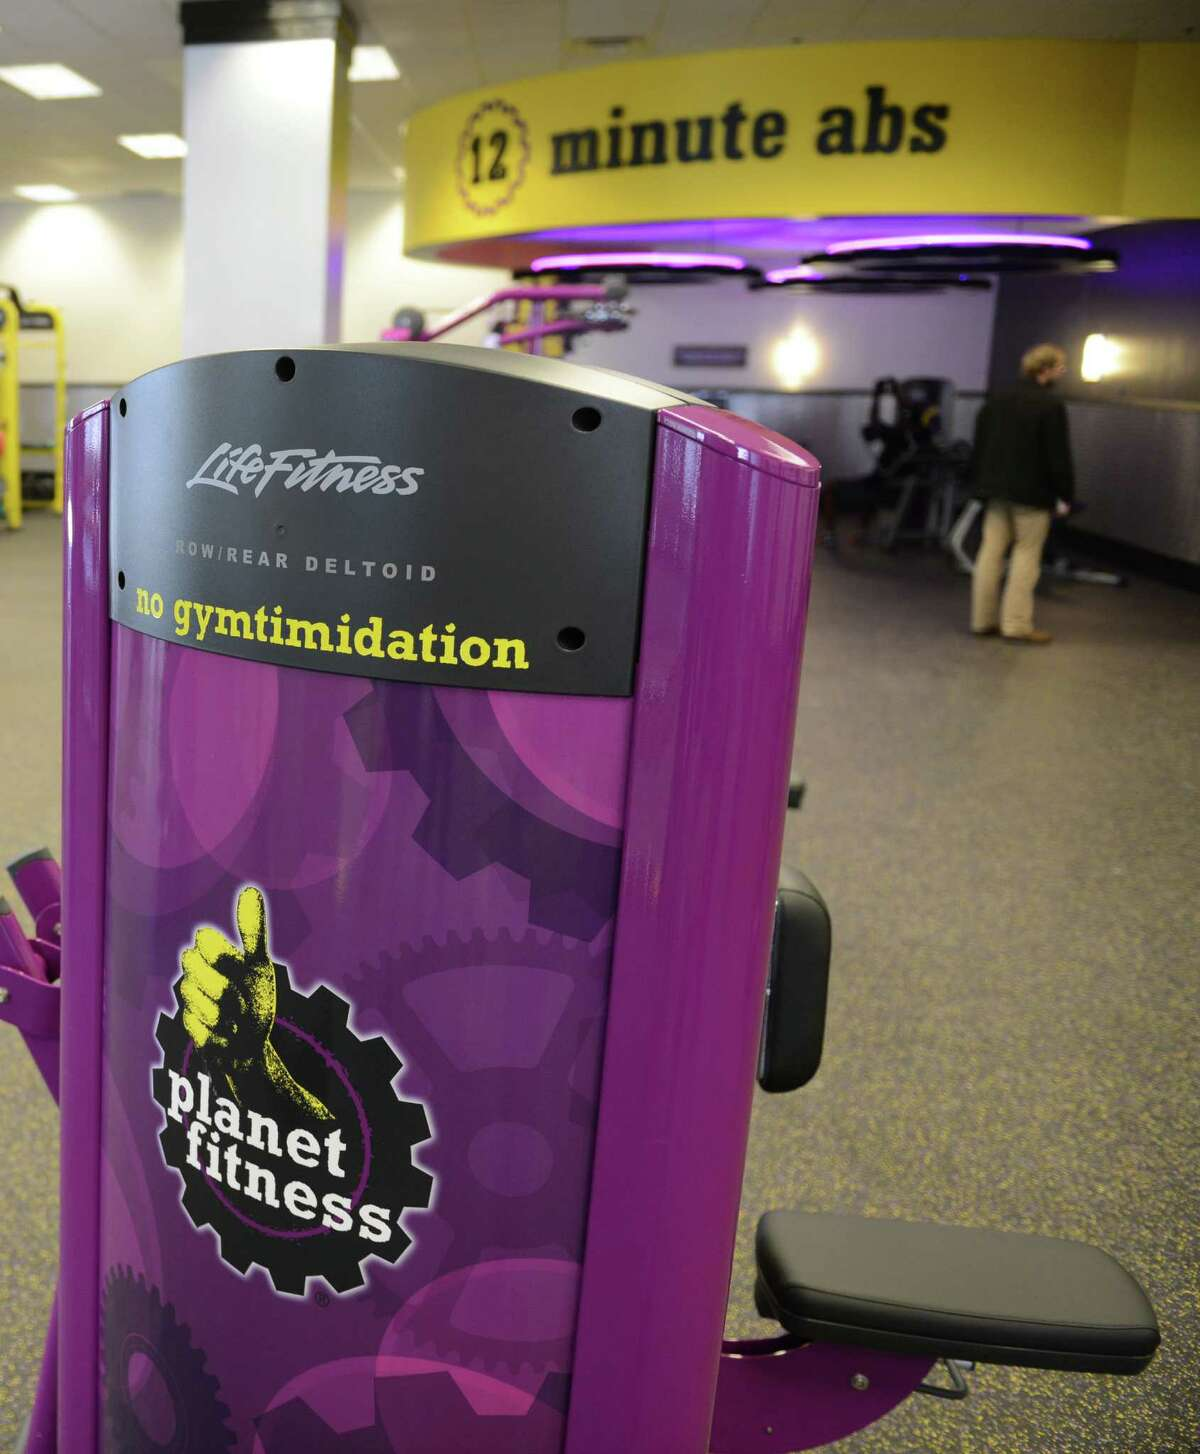 Planet Fitness 6430 Eastex Freeway, Beaumont Visit their website here.